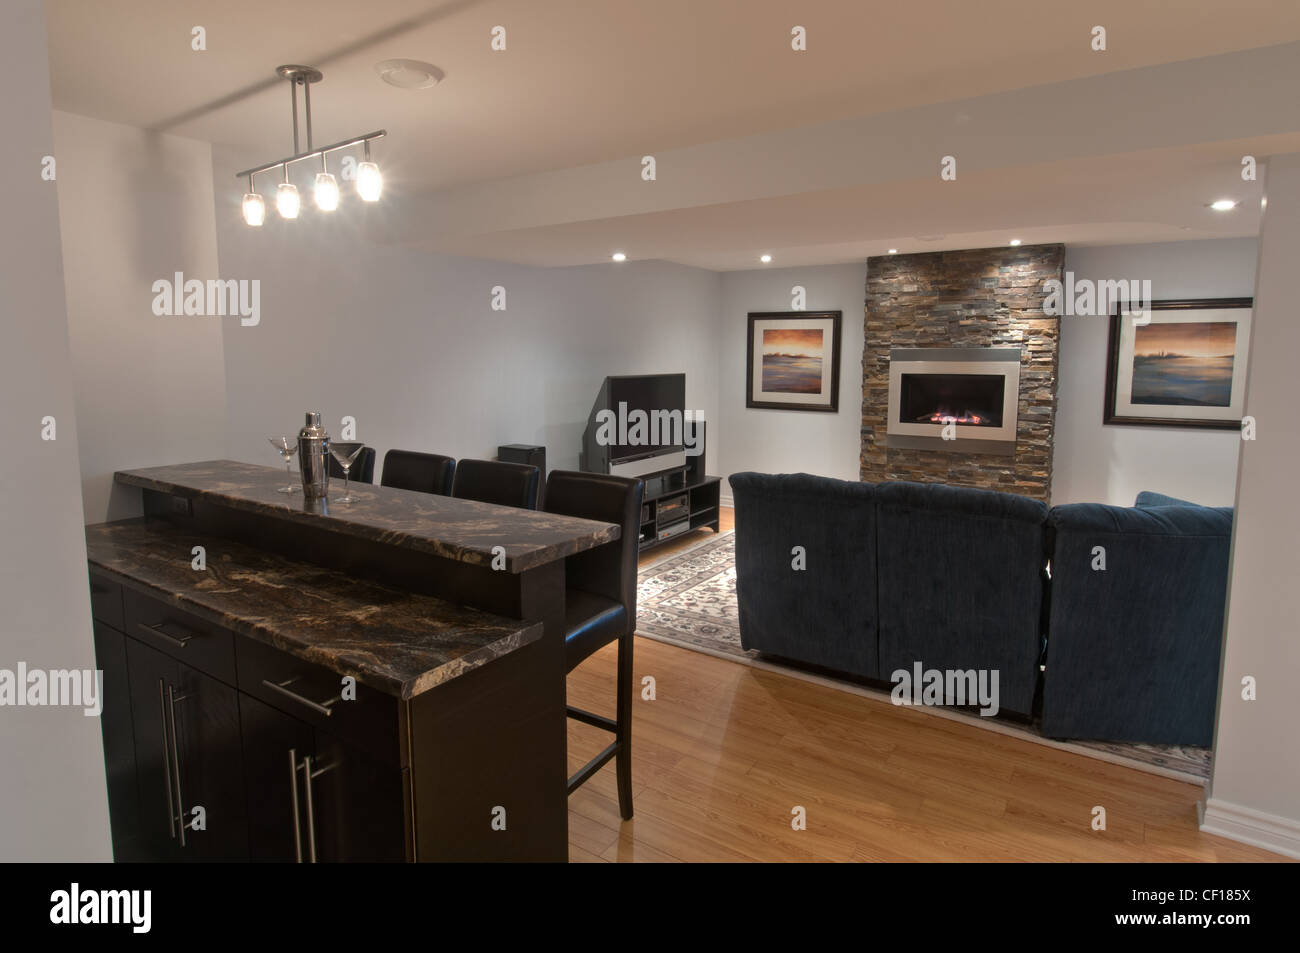 luxus keller wohnzimmer mit kamin und bar stockfoto bild 43668966 alamy. Black Bedroom Furniture Sets. Home Design Ideas